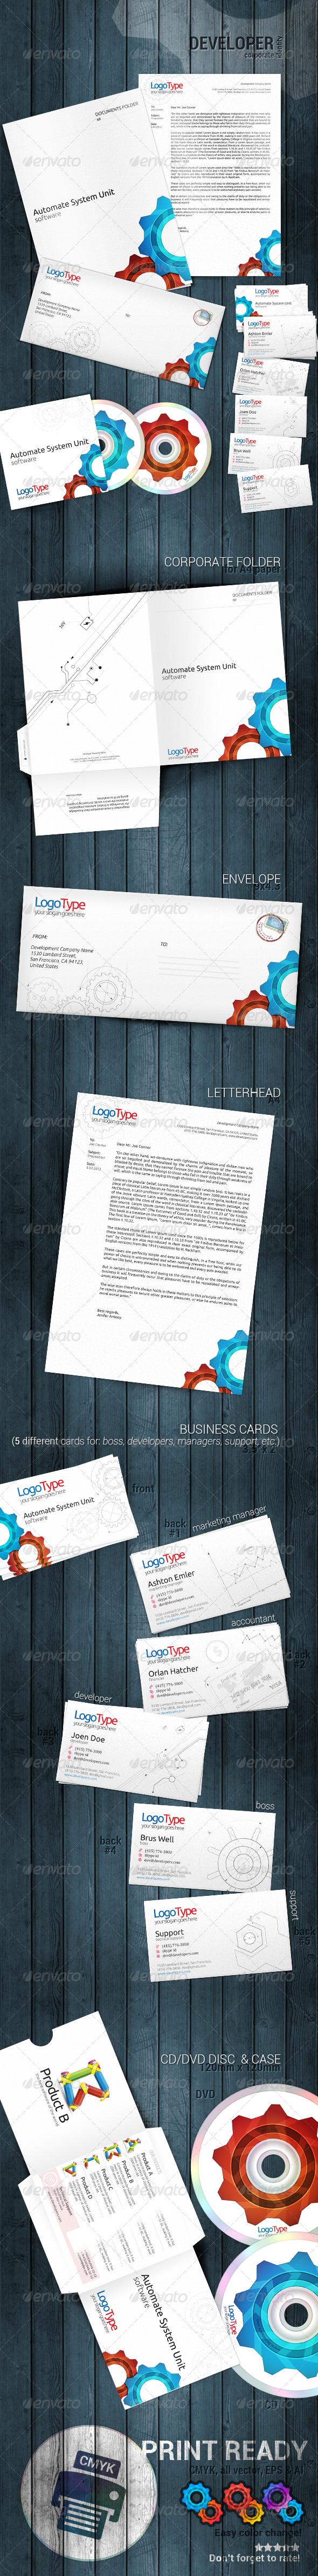 Developer Corporate Identity - Stationery Print Templates